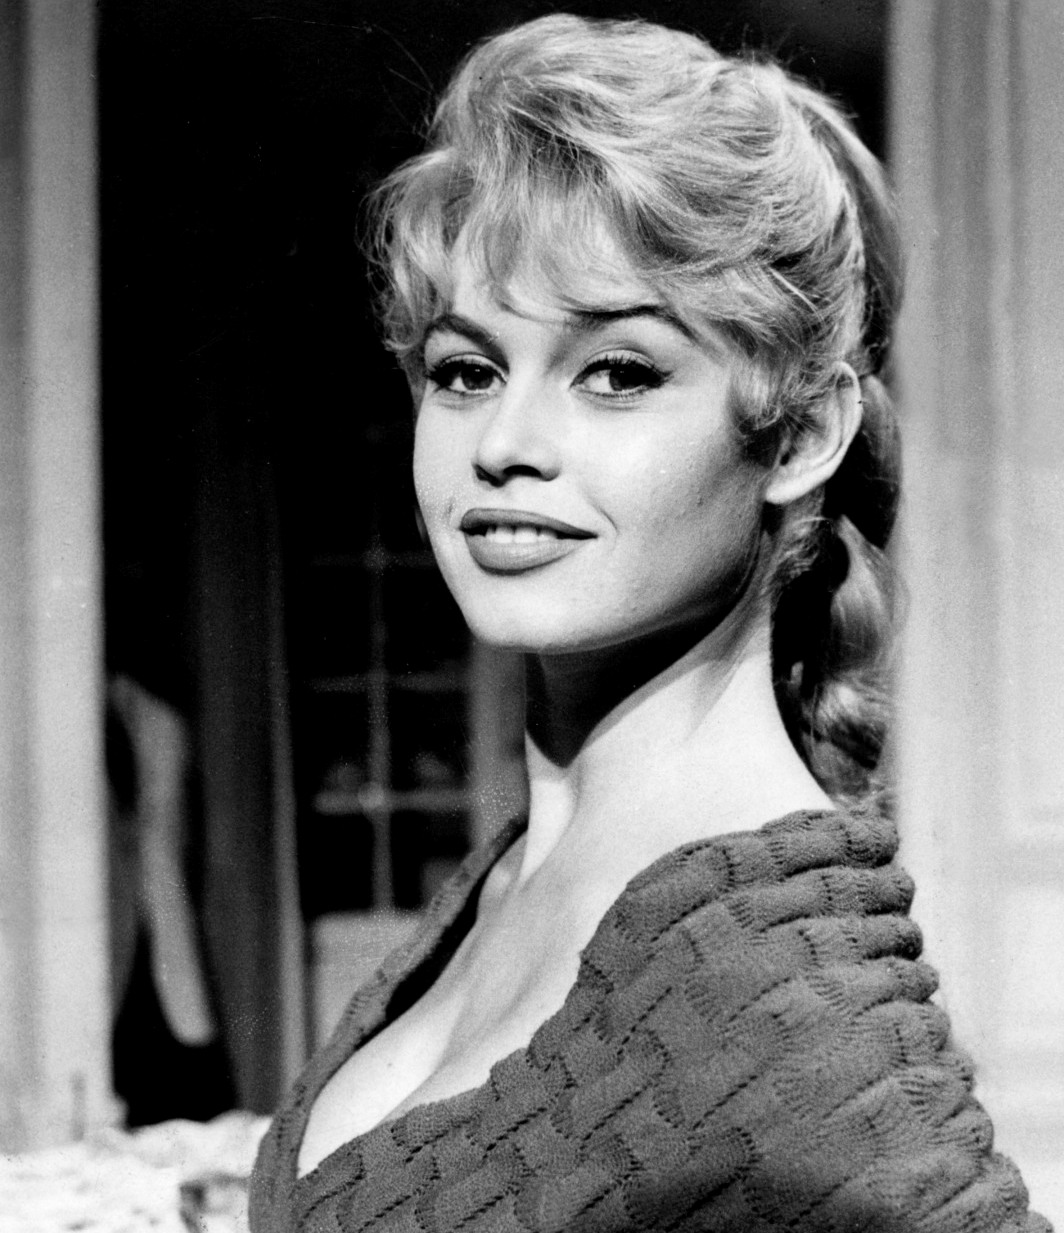 The 50 s and 60 s french actress brigitte bardot was admired by